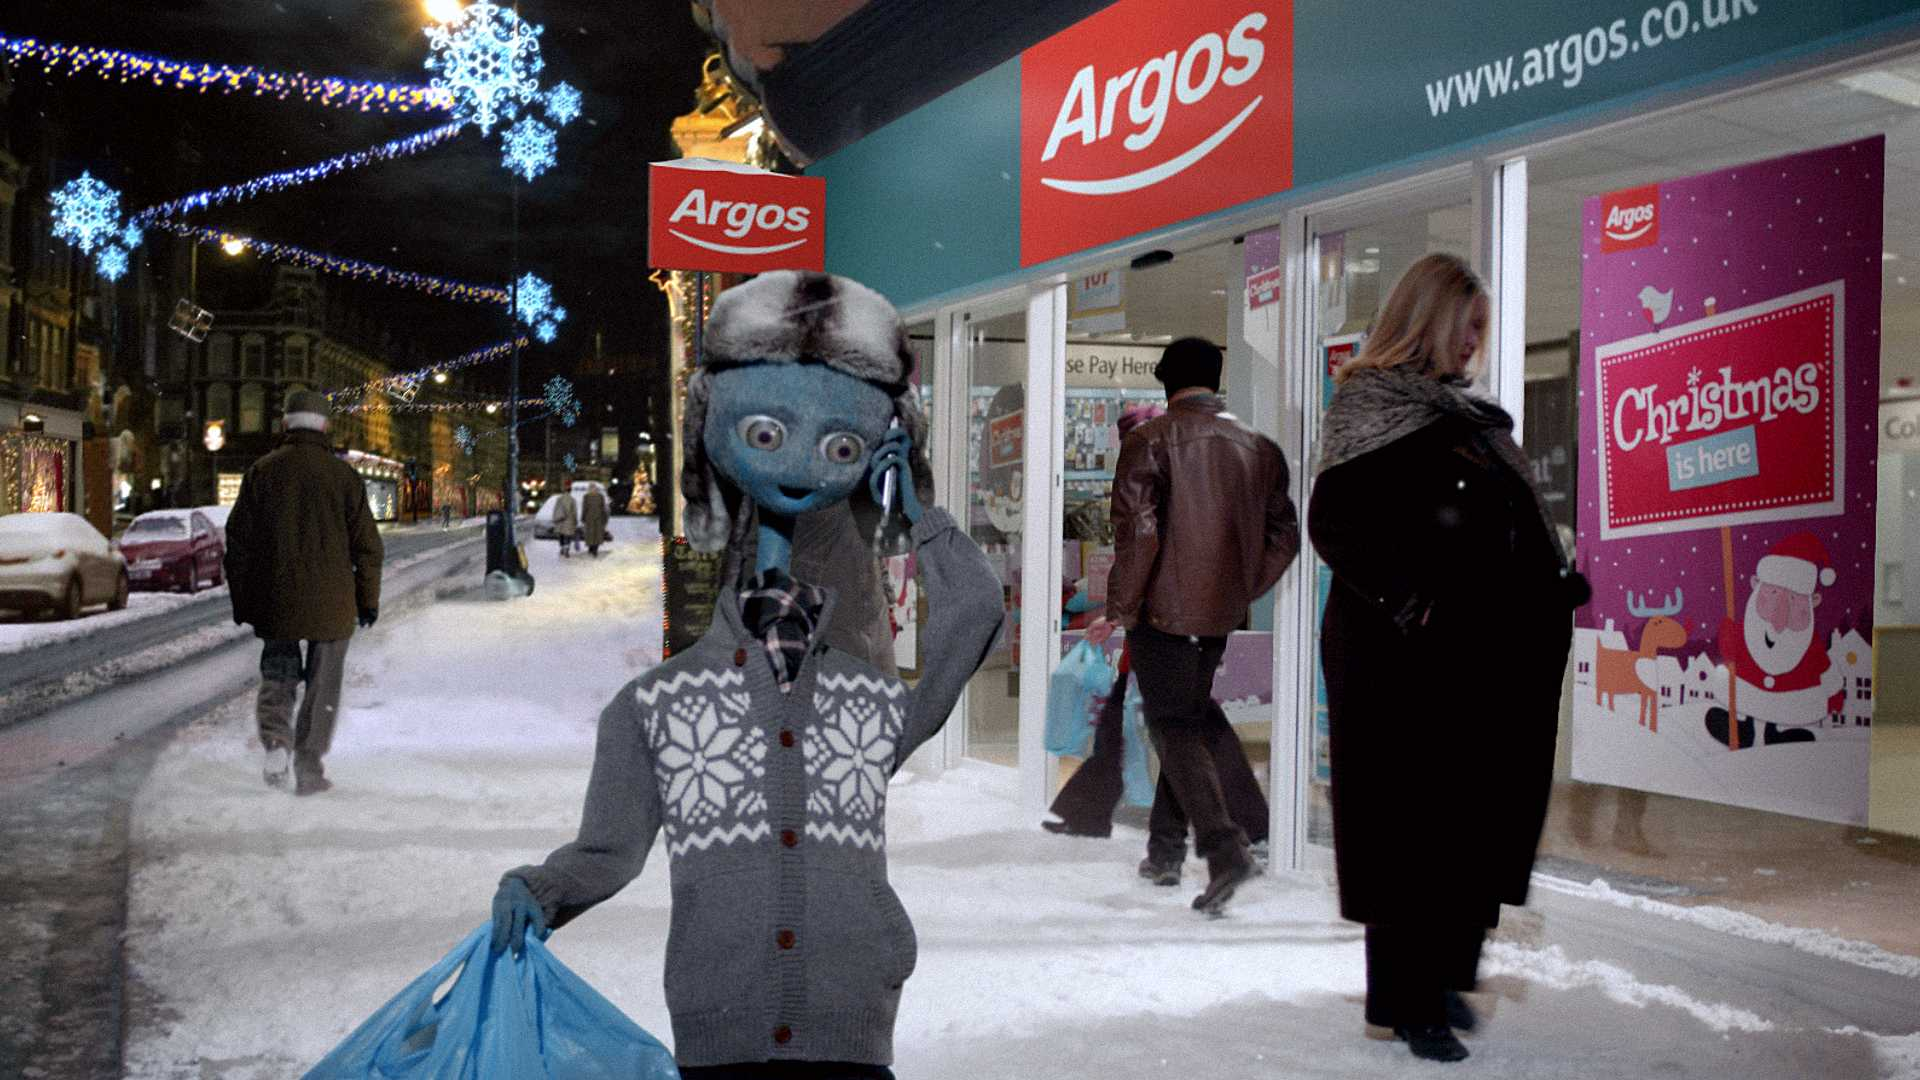 Argos 'I Can Shop From Here'